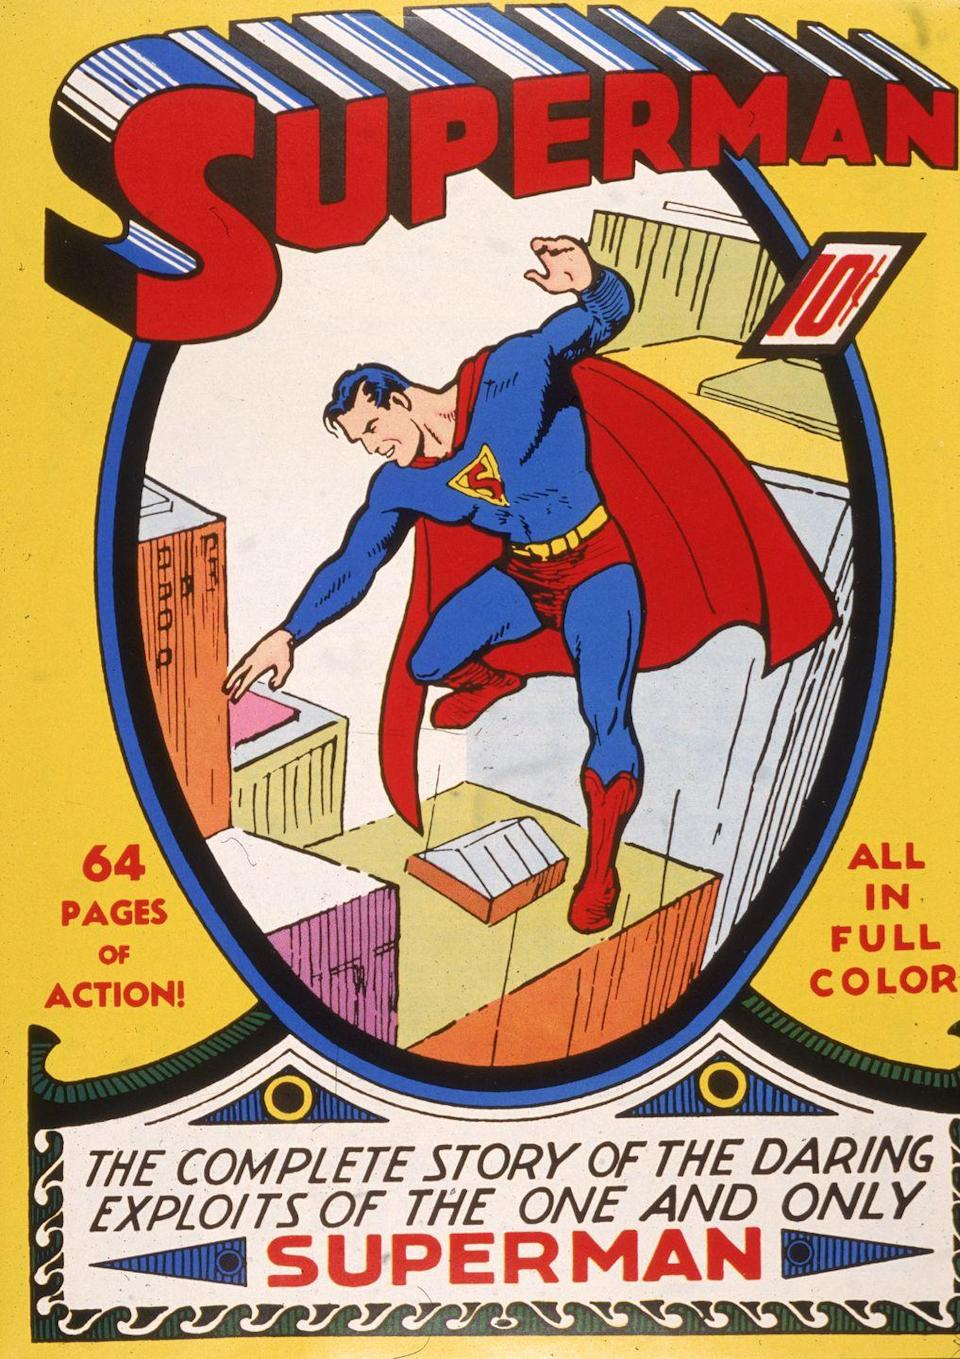 <p>Michael, Christopher, and Matthew were the lead boy baby names. In 1983, the iconic Superman, Christopher Reeve, hung up his cape, completing his super hero films. While the may not have been heroic, Jennifer, Jessica, and Amanda were the top 3 girls' names.</p>